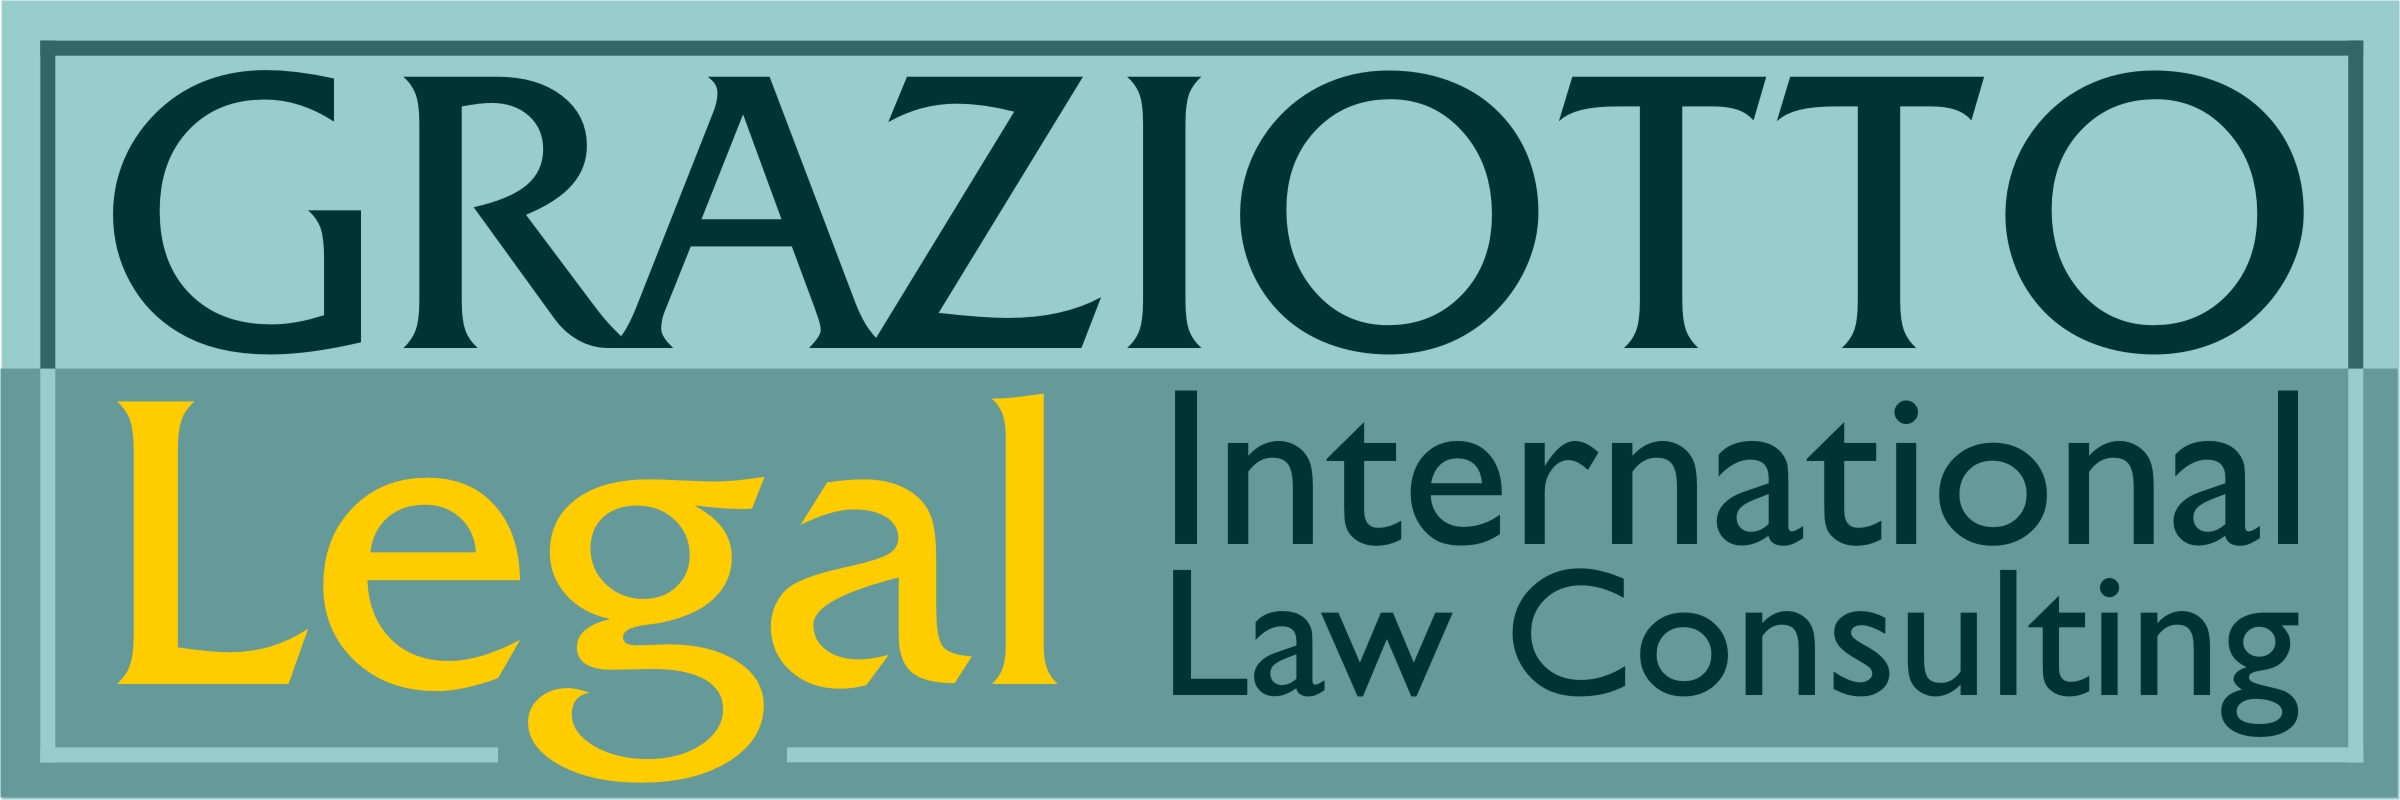 Graziotto Legal - International Law Firm